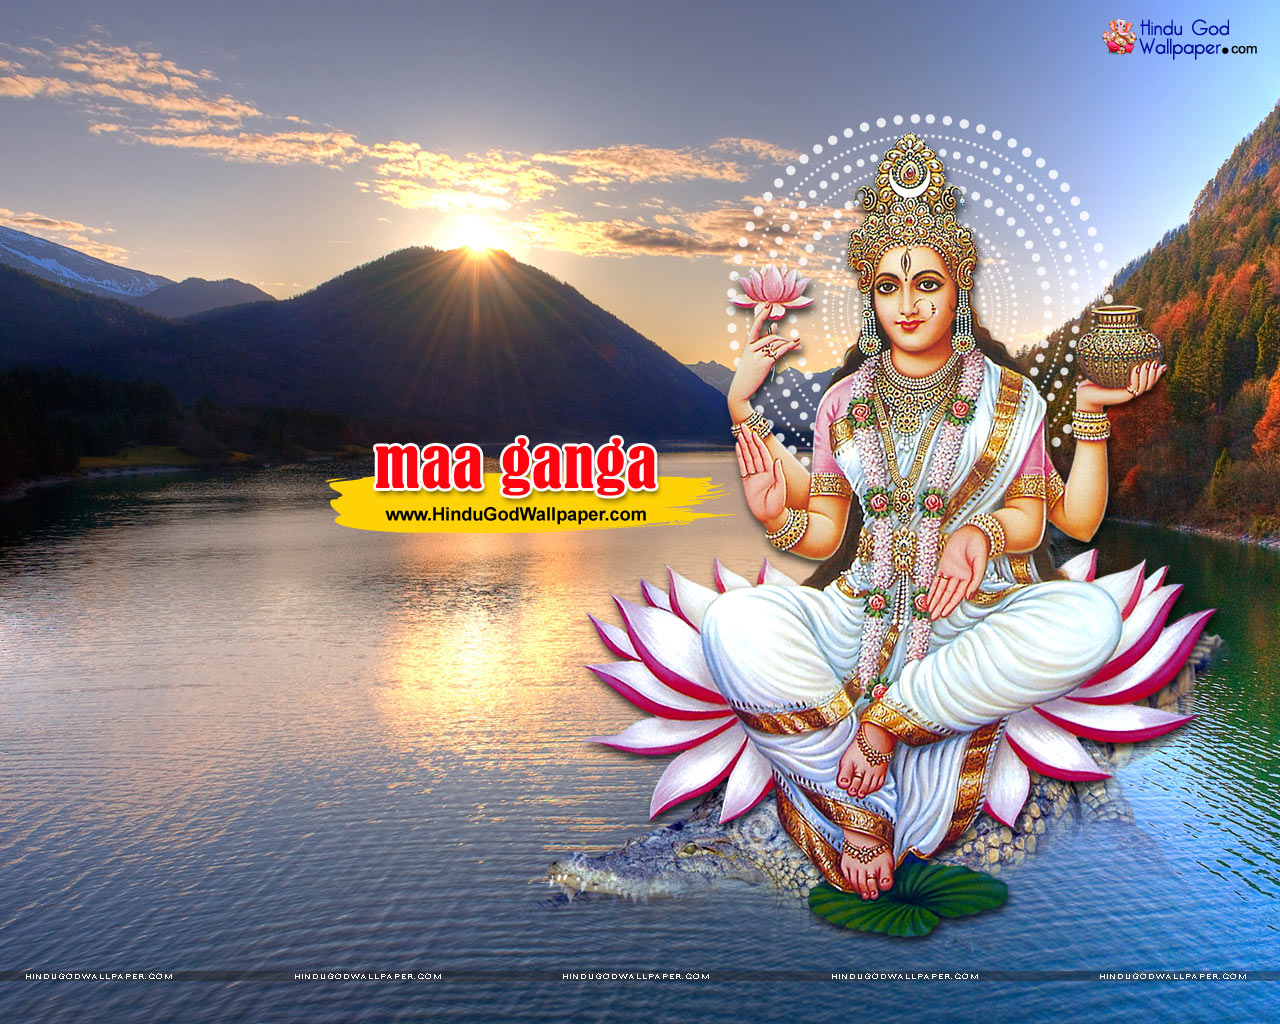 Hum Katha Sunate Hai Shri Ram Ki Free Download Pediagett